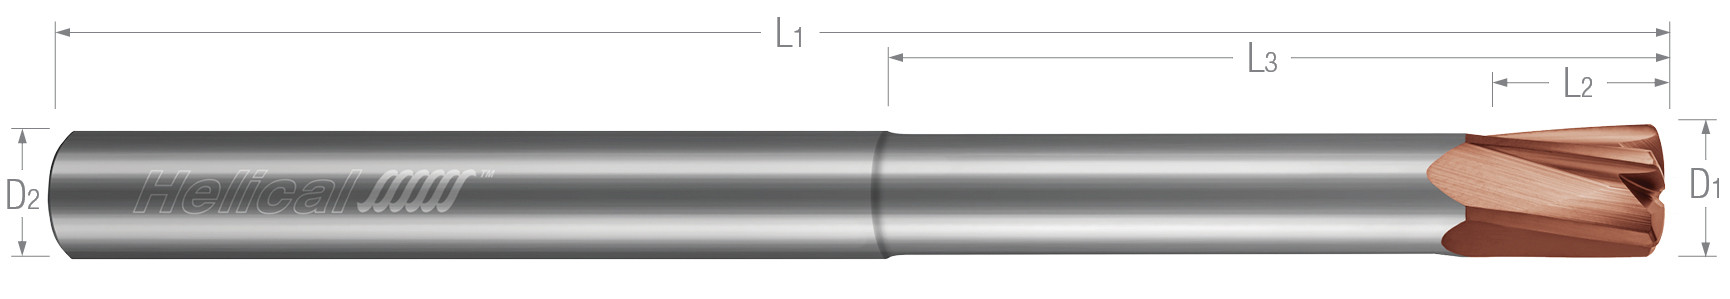 High Feed End Mills - Steels up to 45 Rc - Metric - Variable Pitch - Reduced Neck